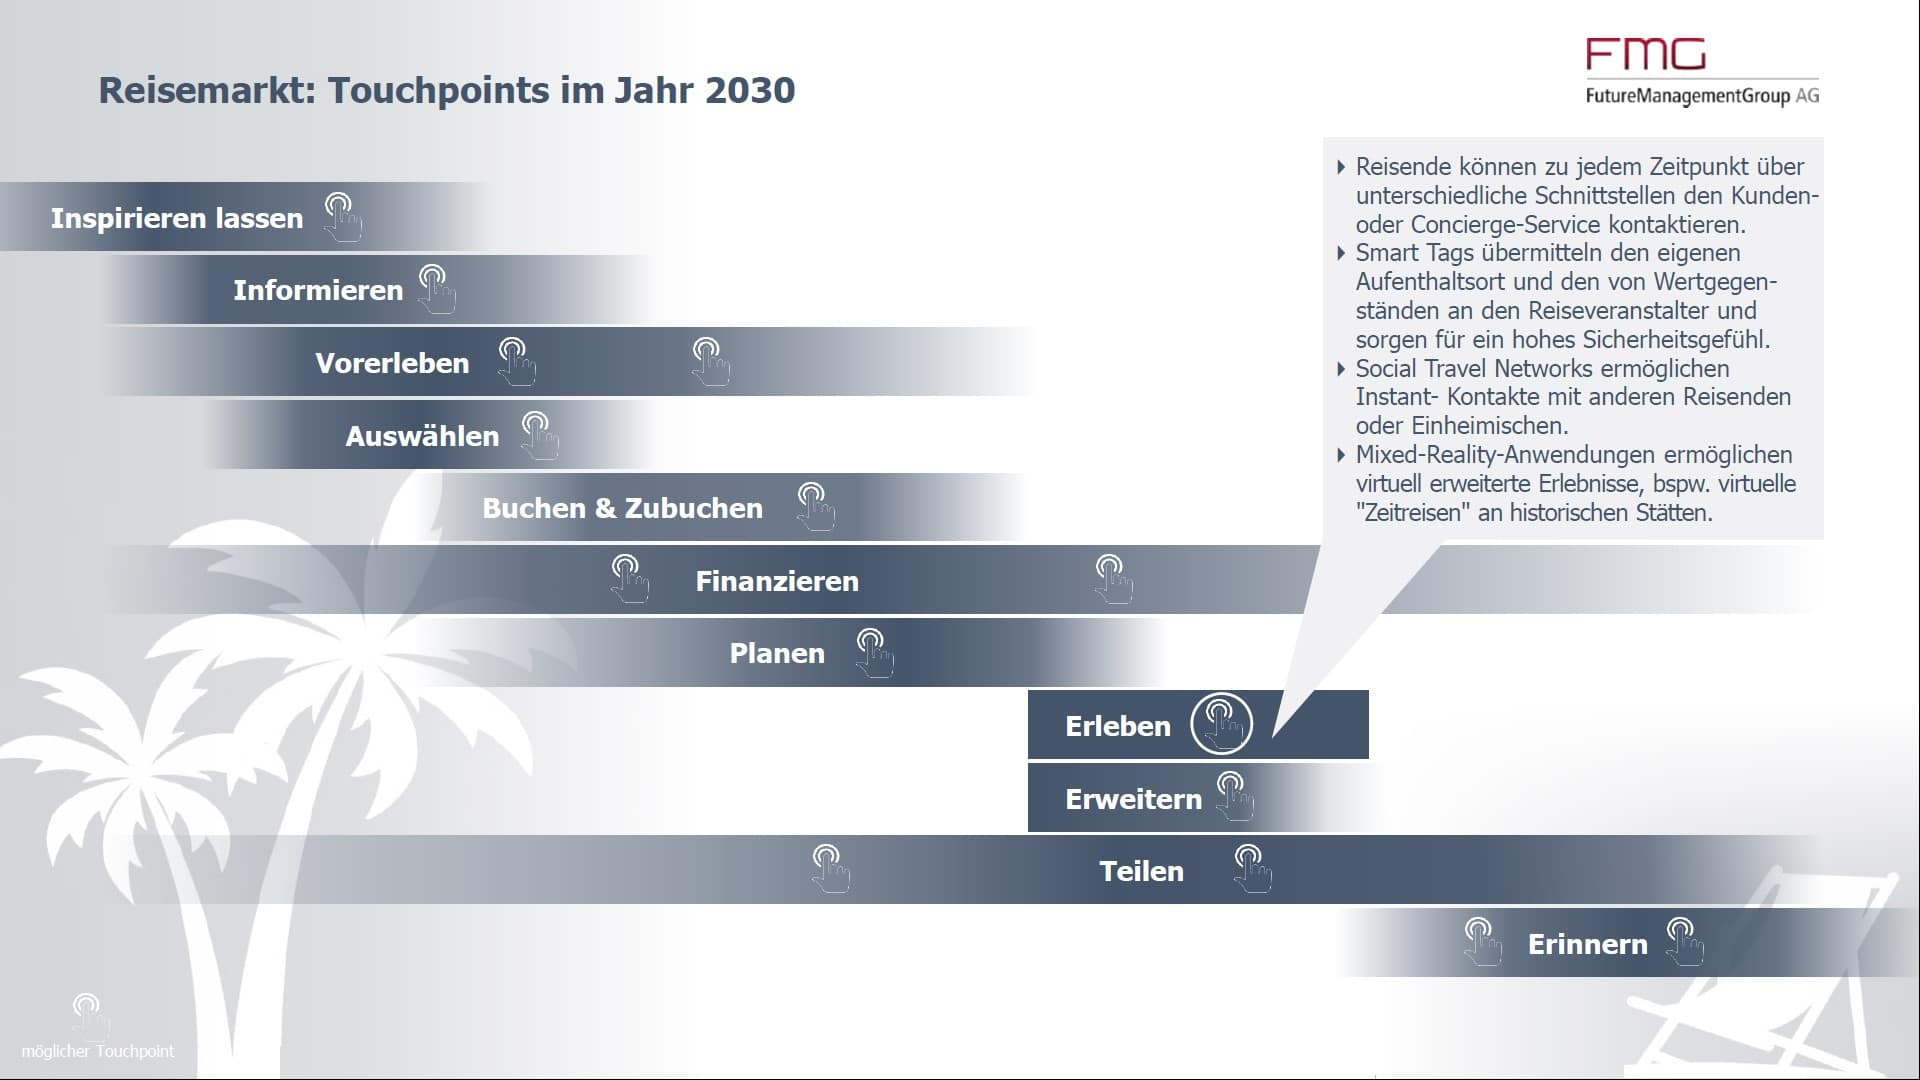 Reisemarkt: Touchpoints in 2030